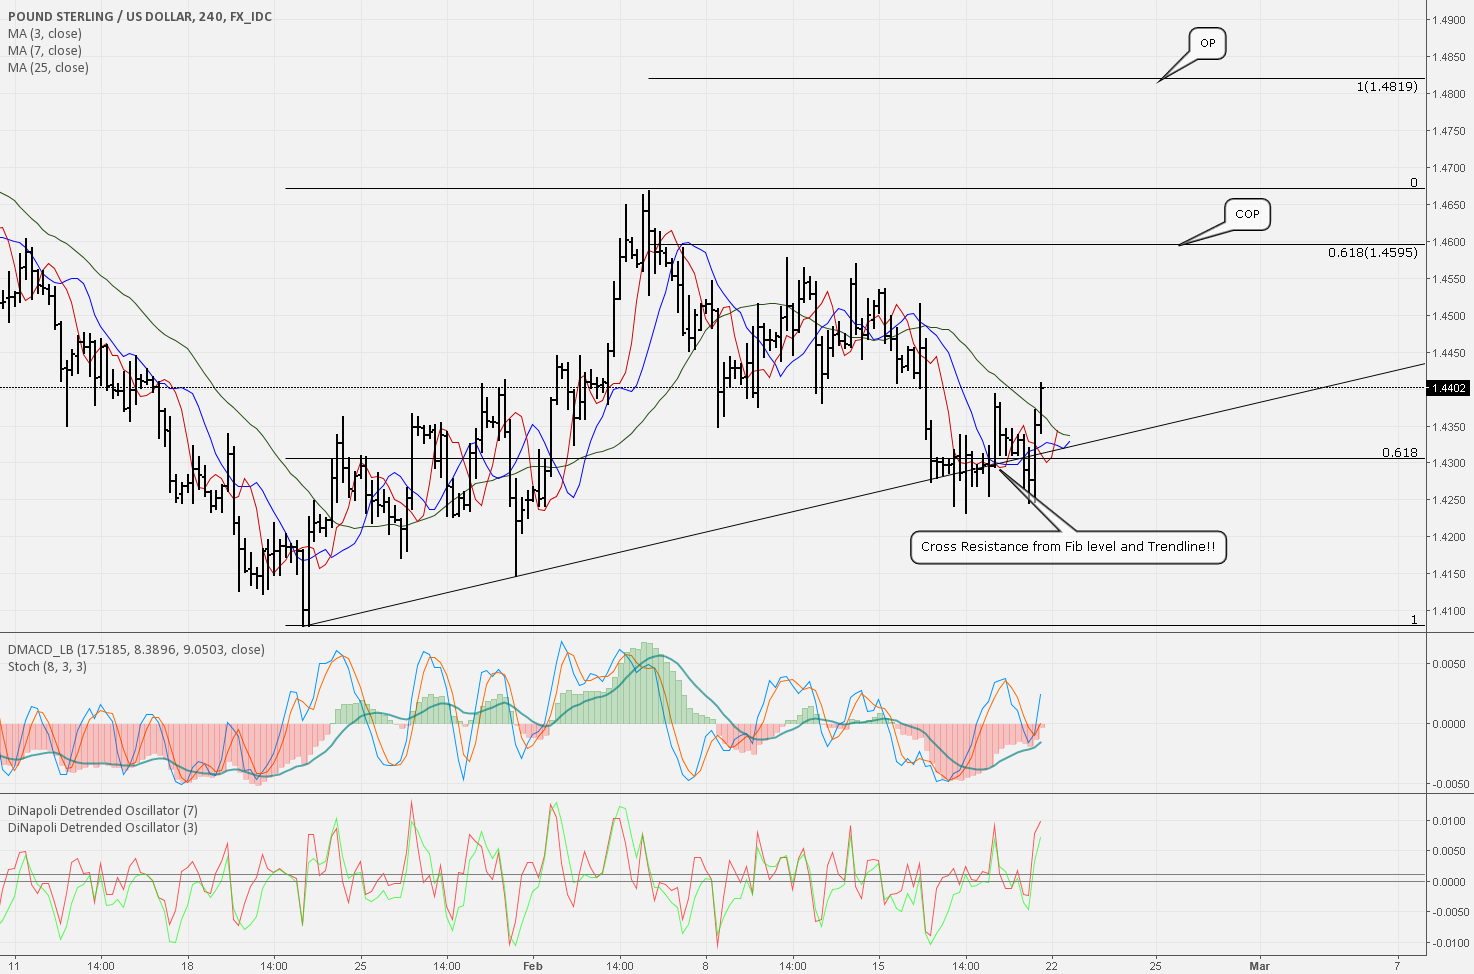 DiNapoli Trading on GBP/USD 400Pip move expected